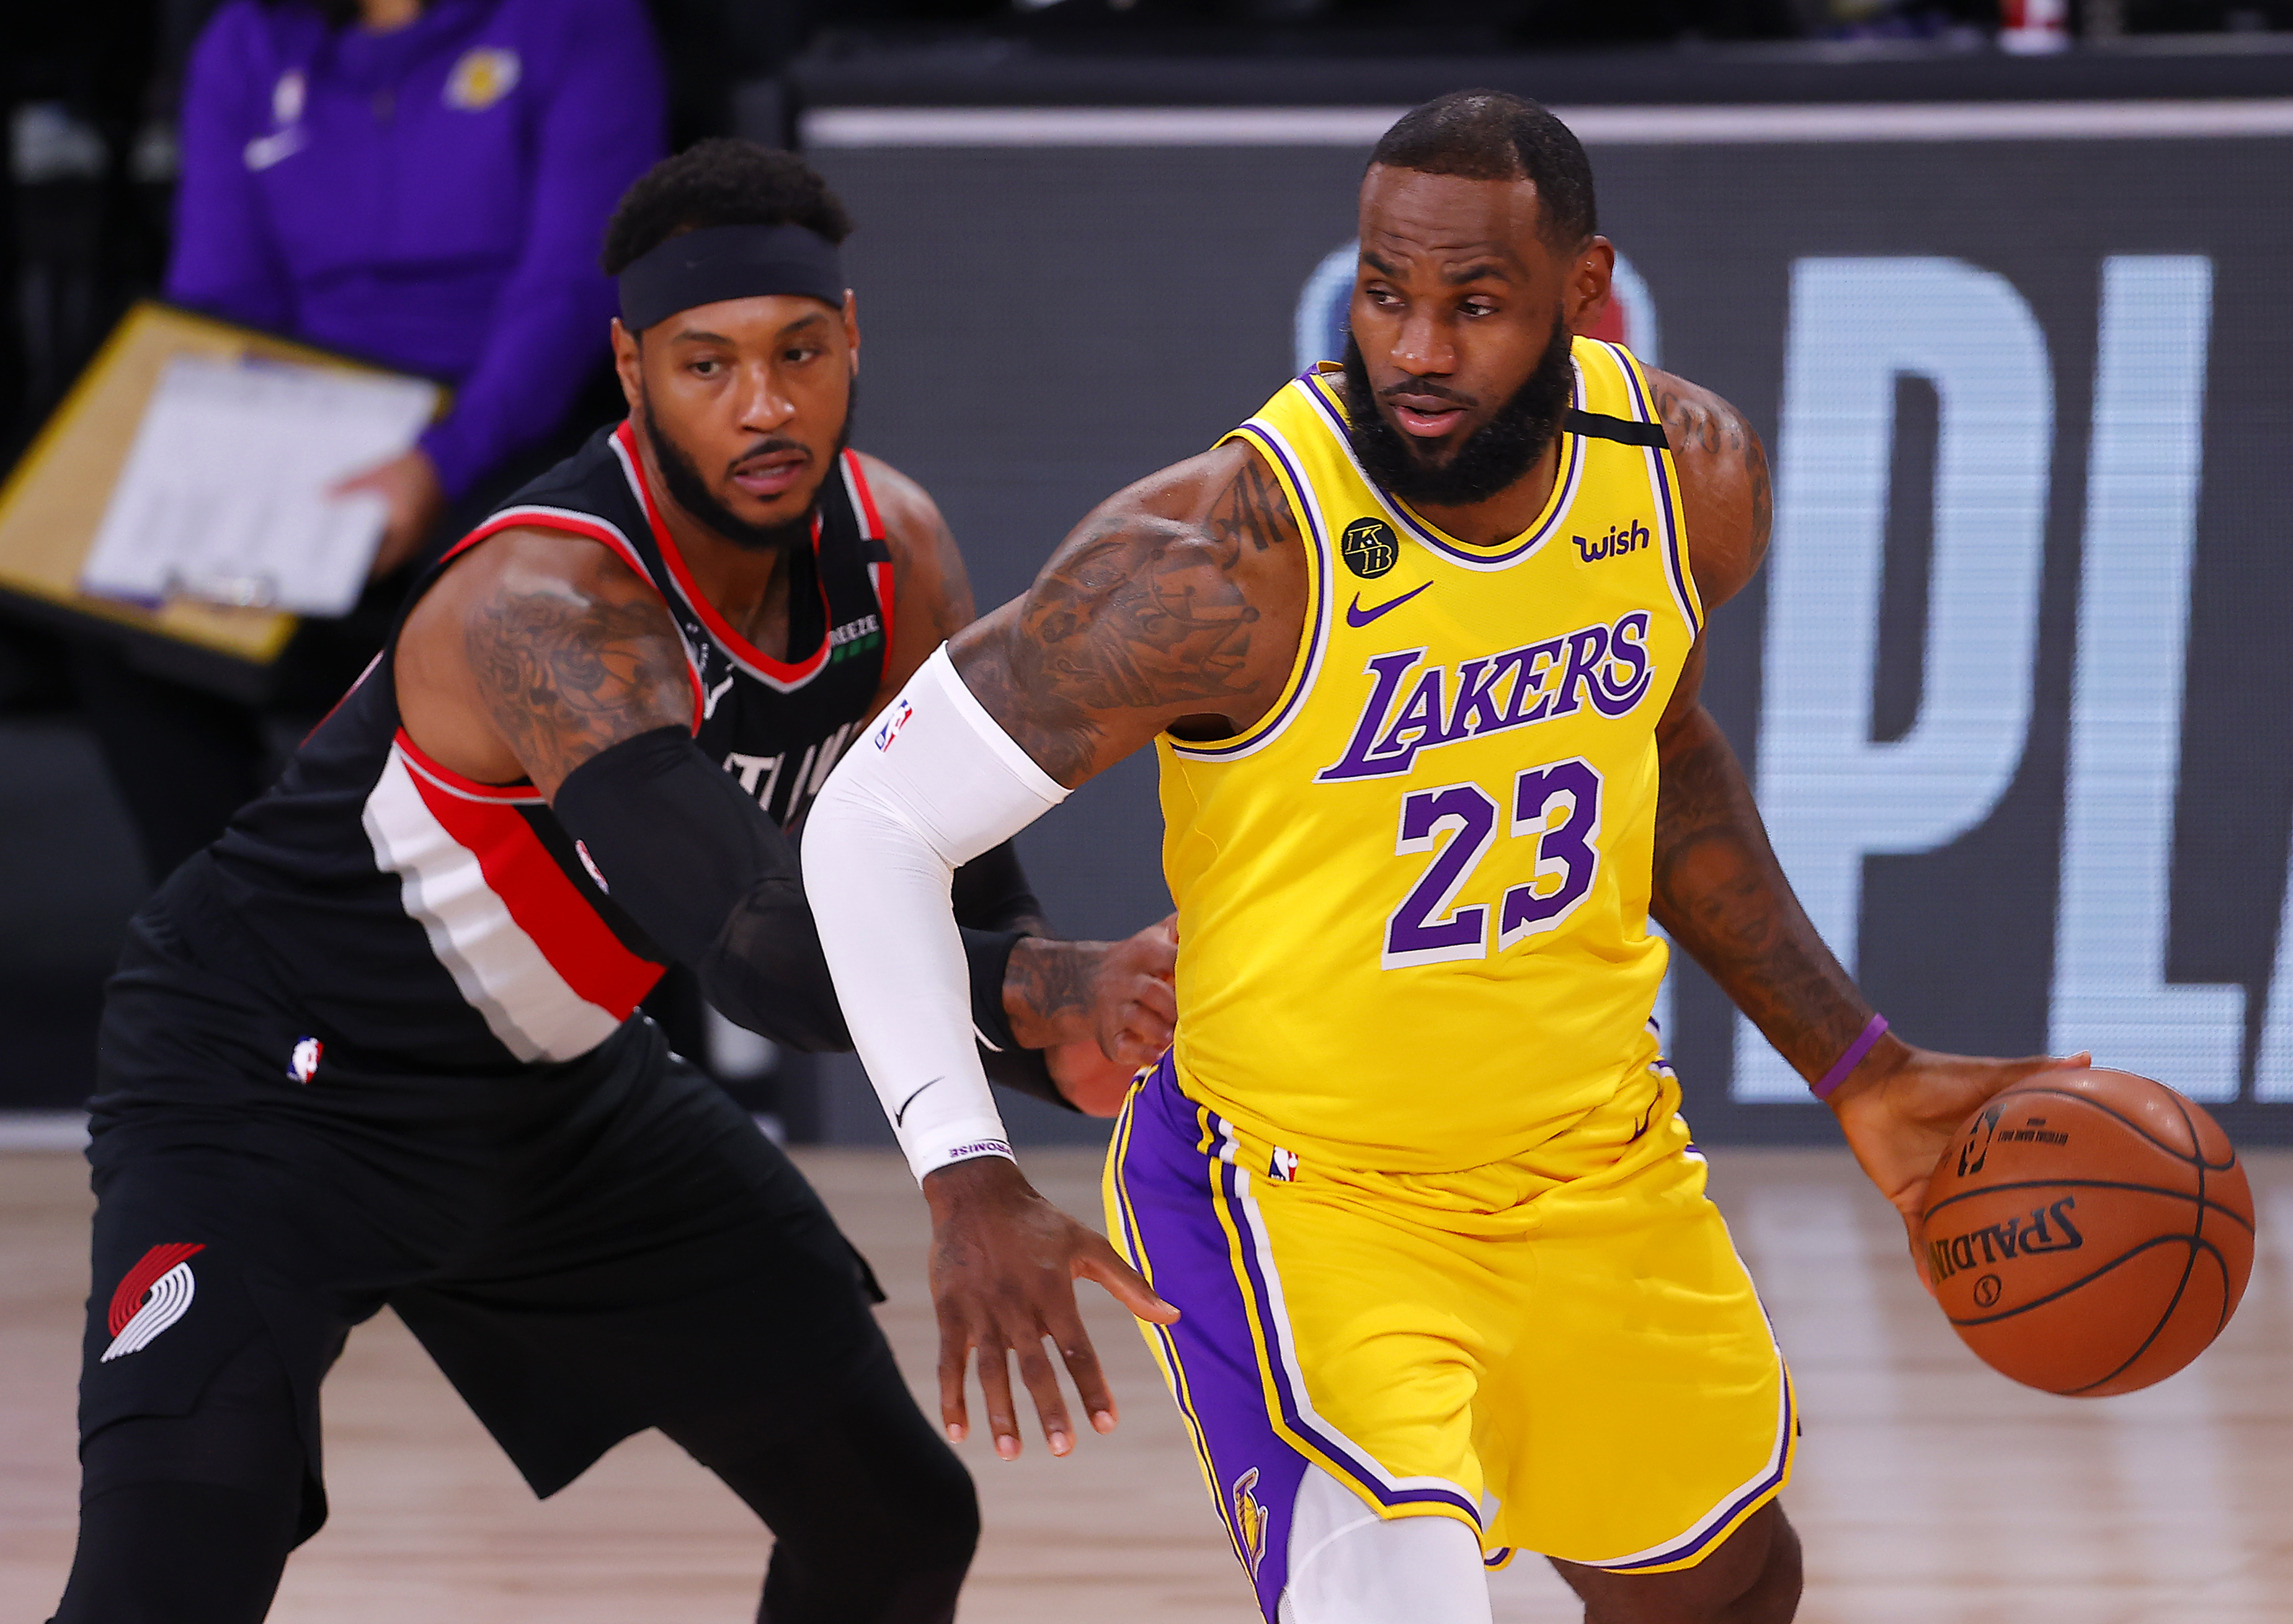 Carmelo Anthony gaining interest from L.A. Lakers in NBA free agency, per  report - oregonlive.com